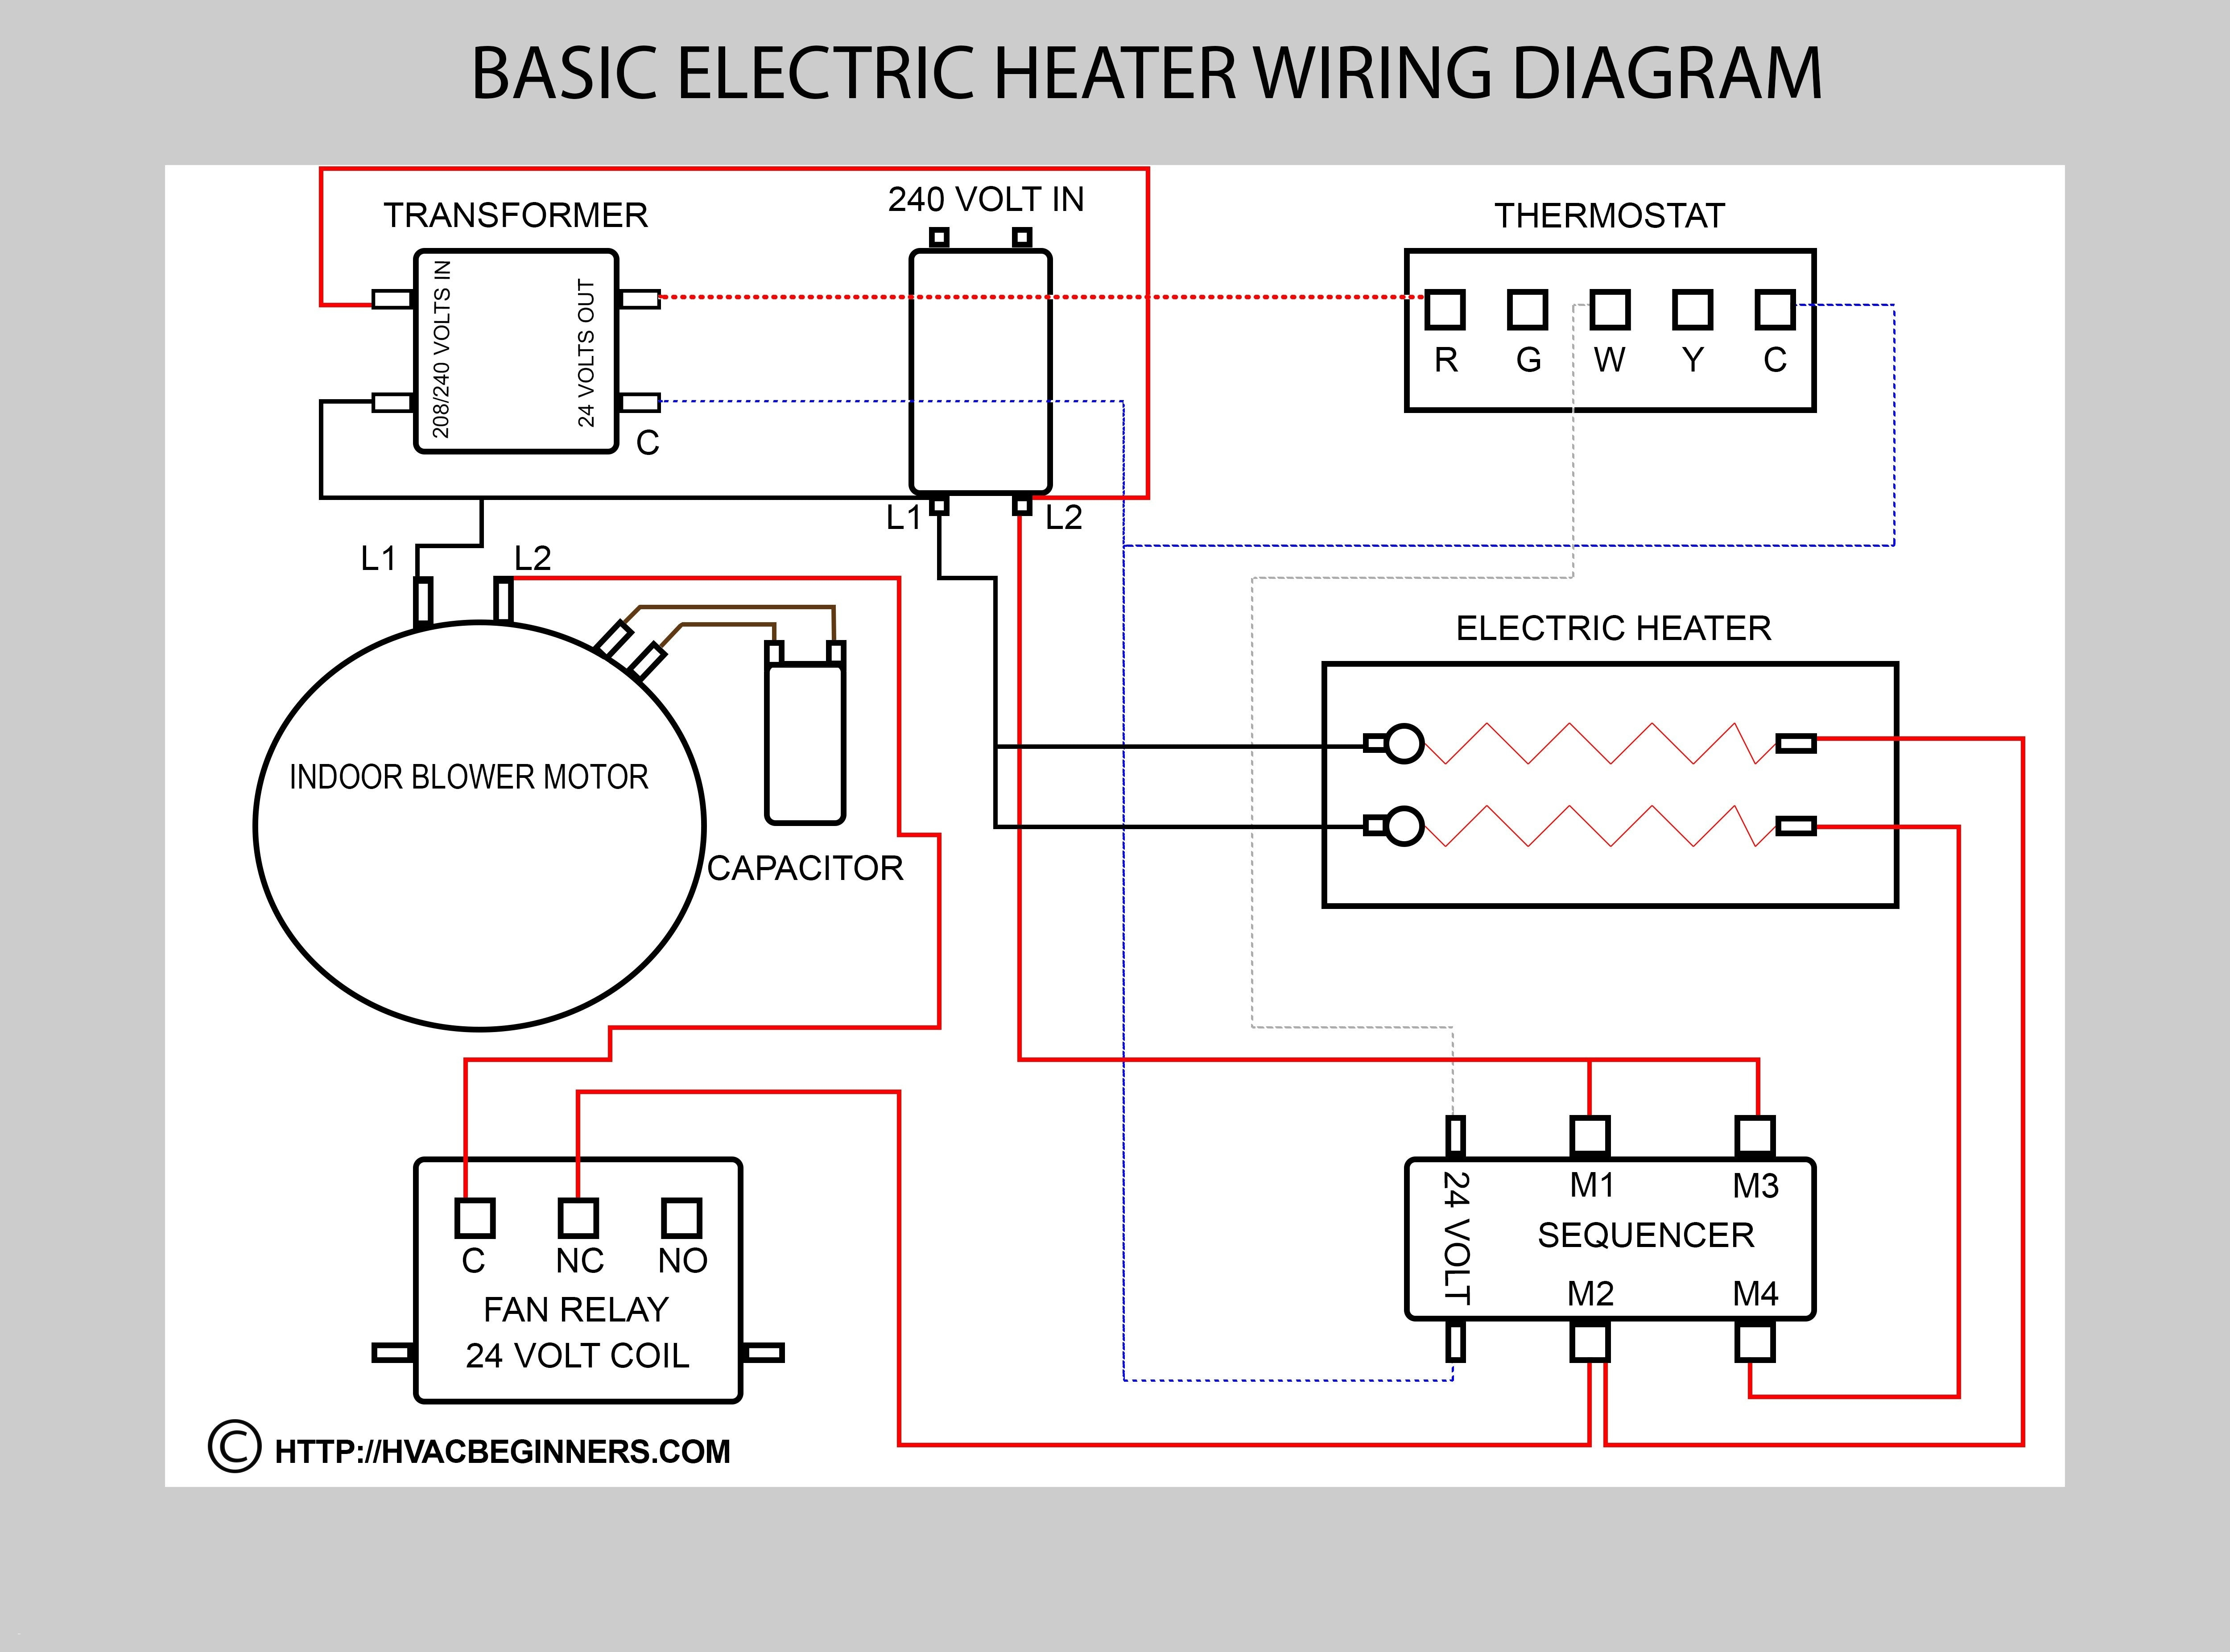 Adam Trailer Wiring Diagram Central Air Conditioner Wiring Diagram Free Wiring Diagram